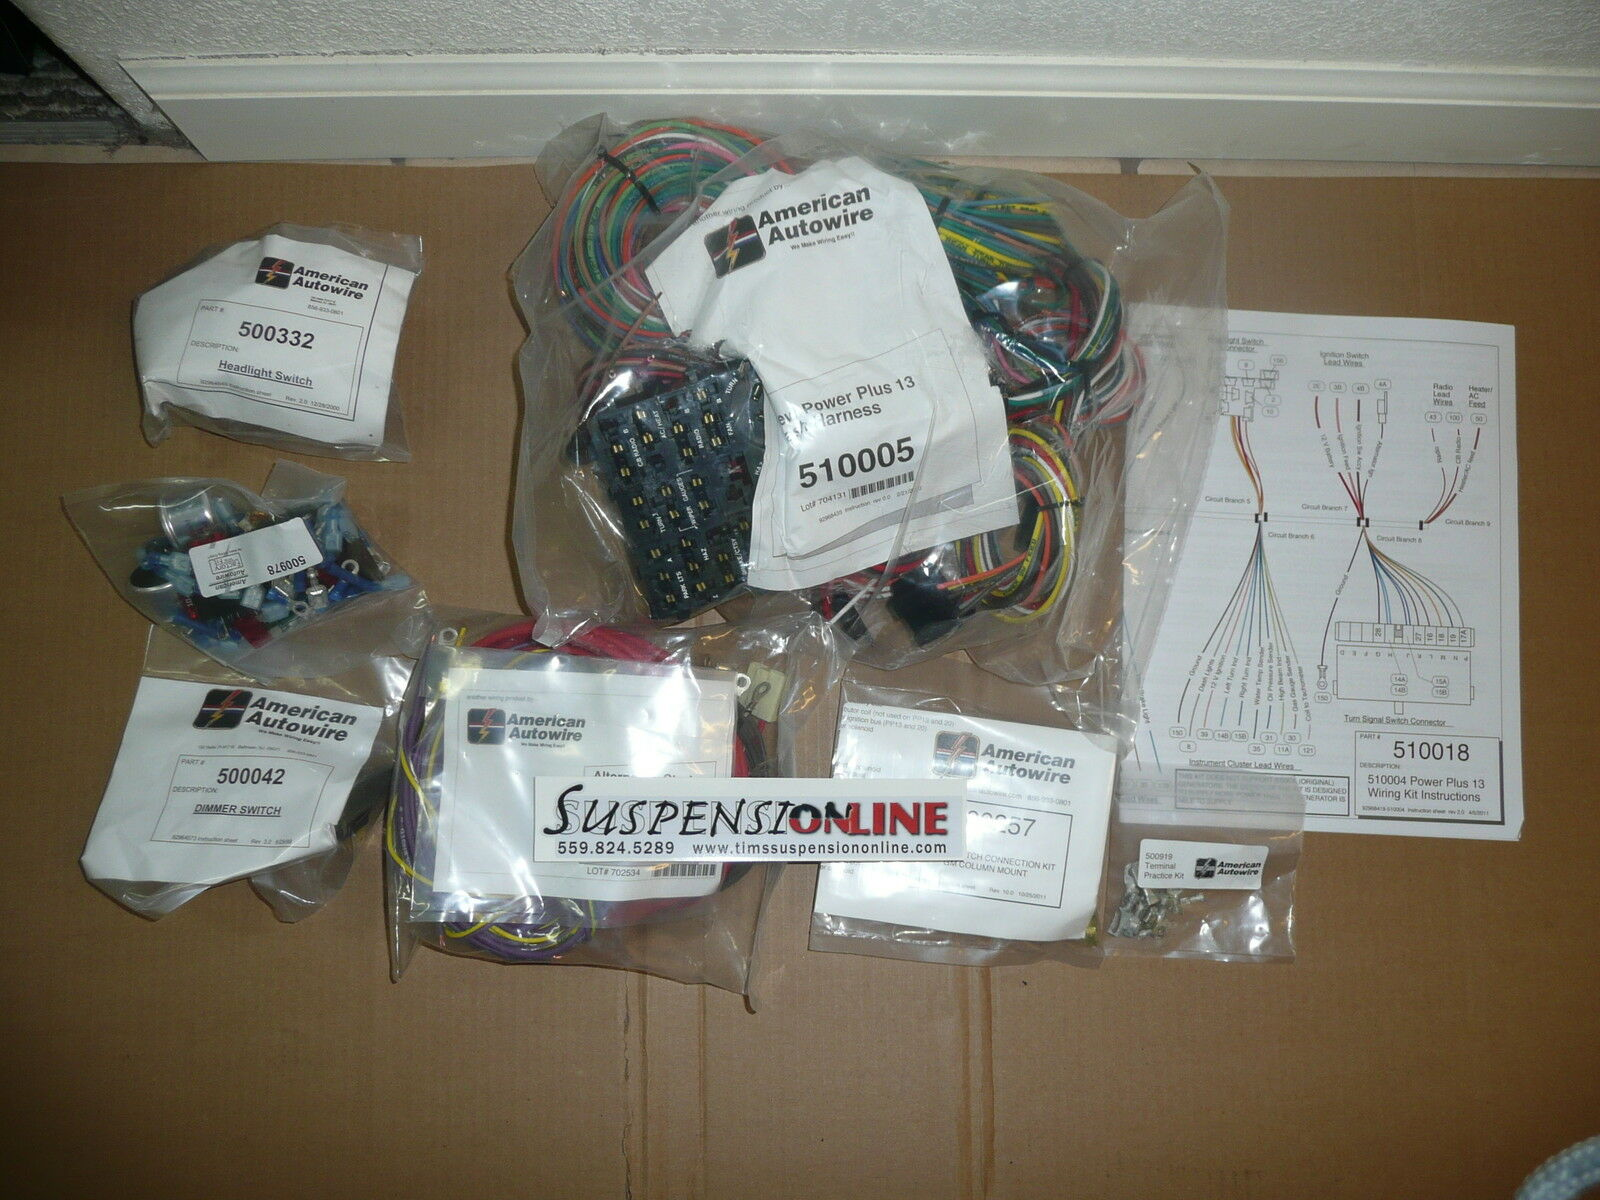 American Autowire Power Plus 13 510004 Street Rod Hot Universal Wiring Kits Harness 1 Of 3only 2 Available See More